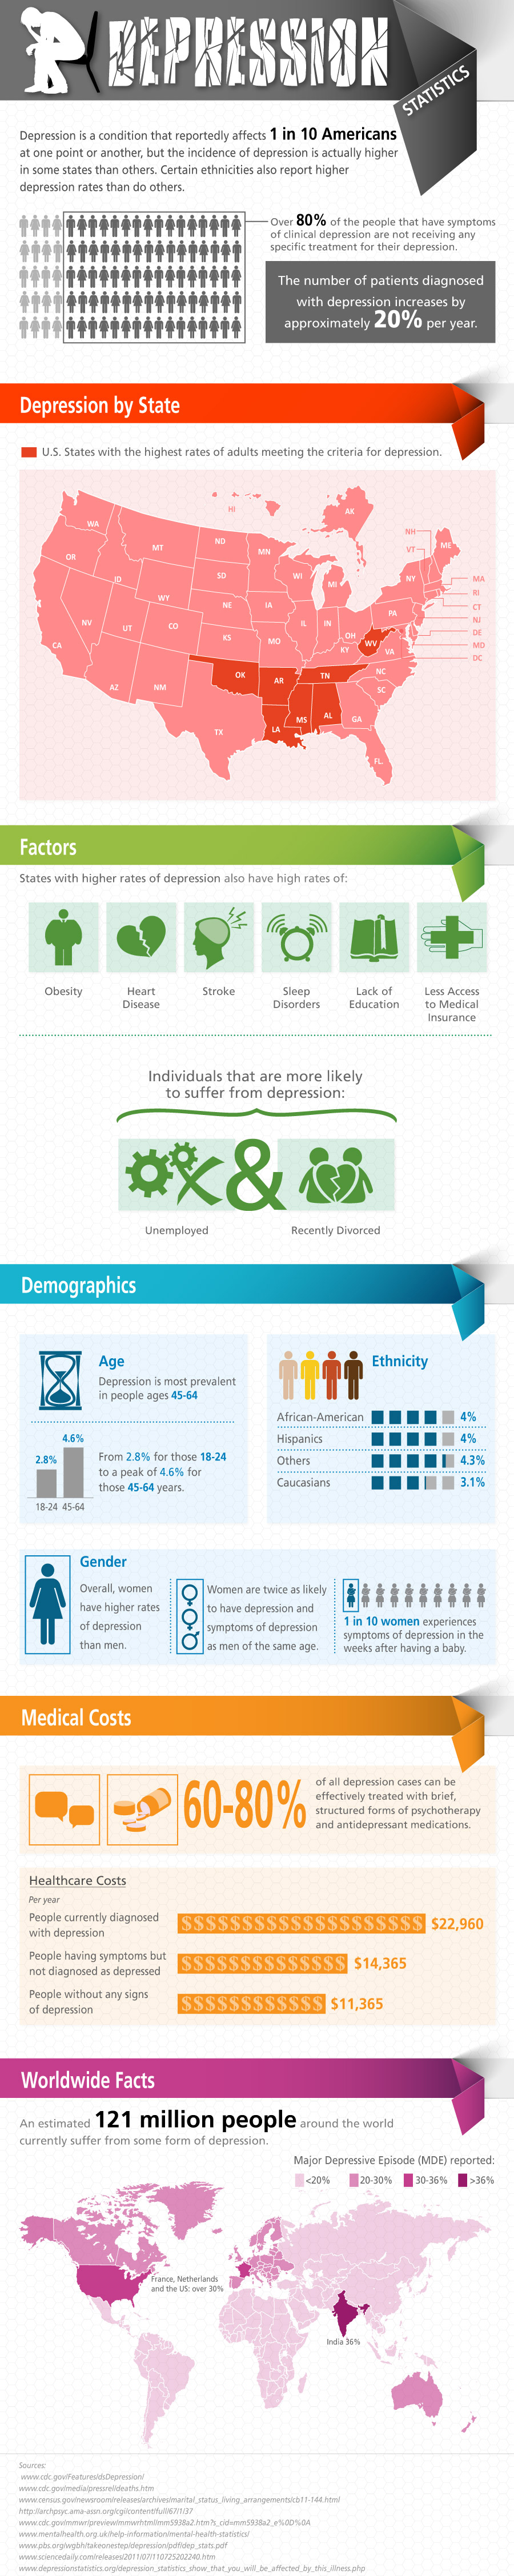 Depression Statistics: Unhappiness by the Numbers [INFOGRAPHIC]